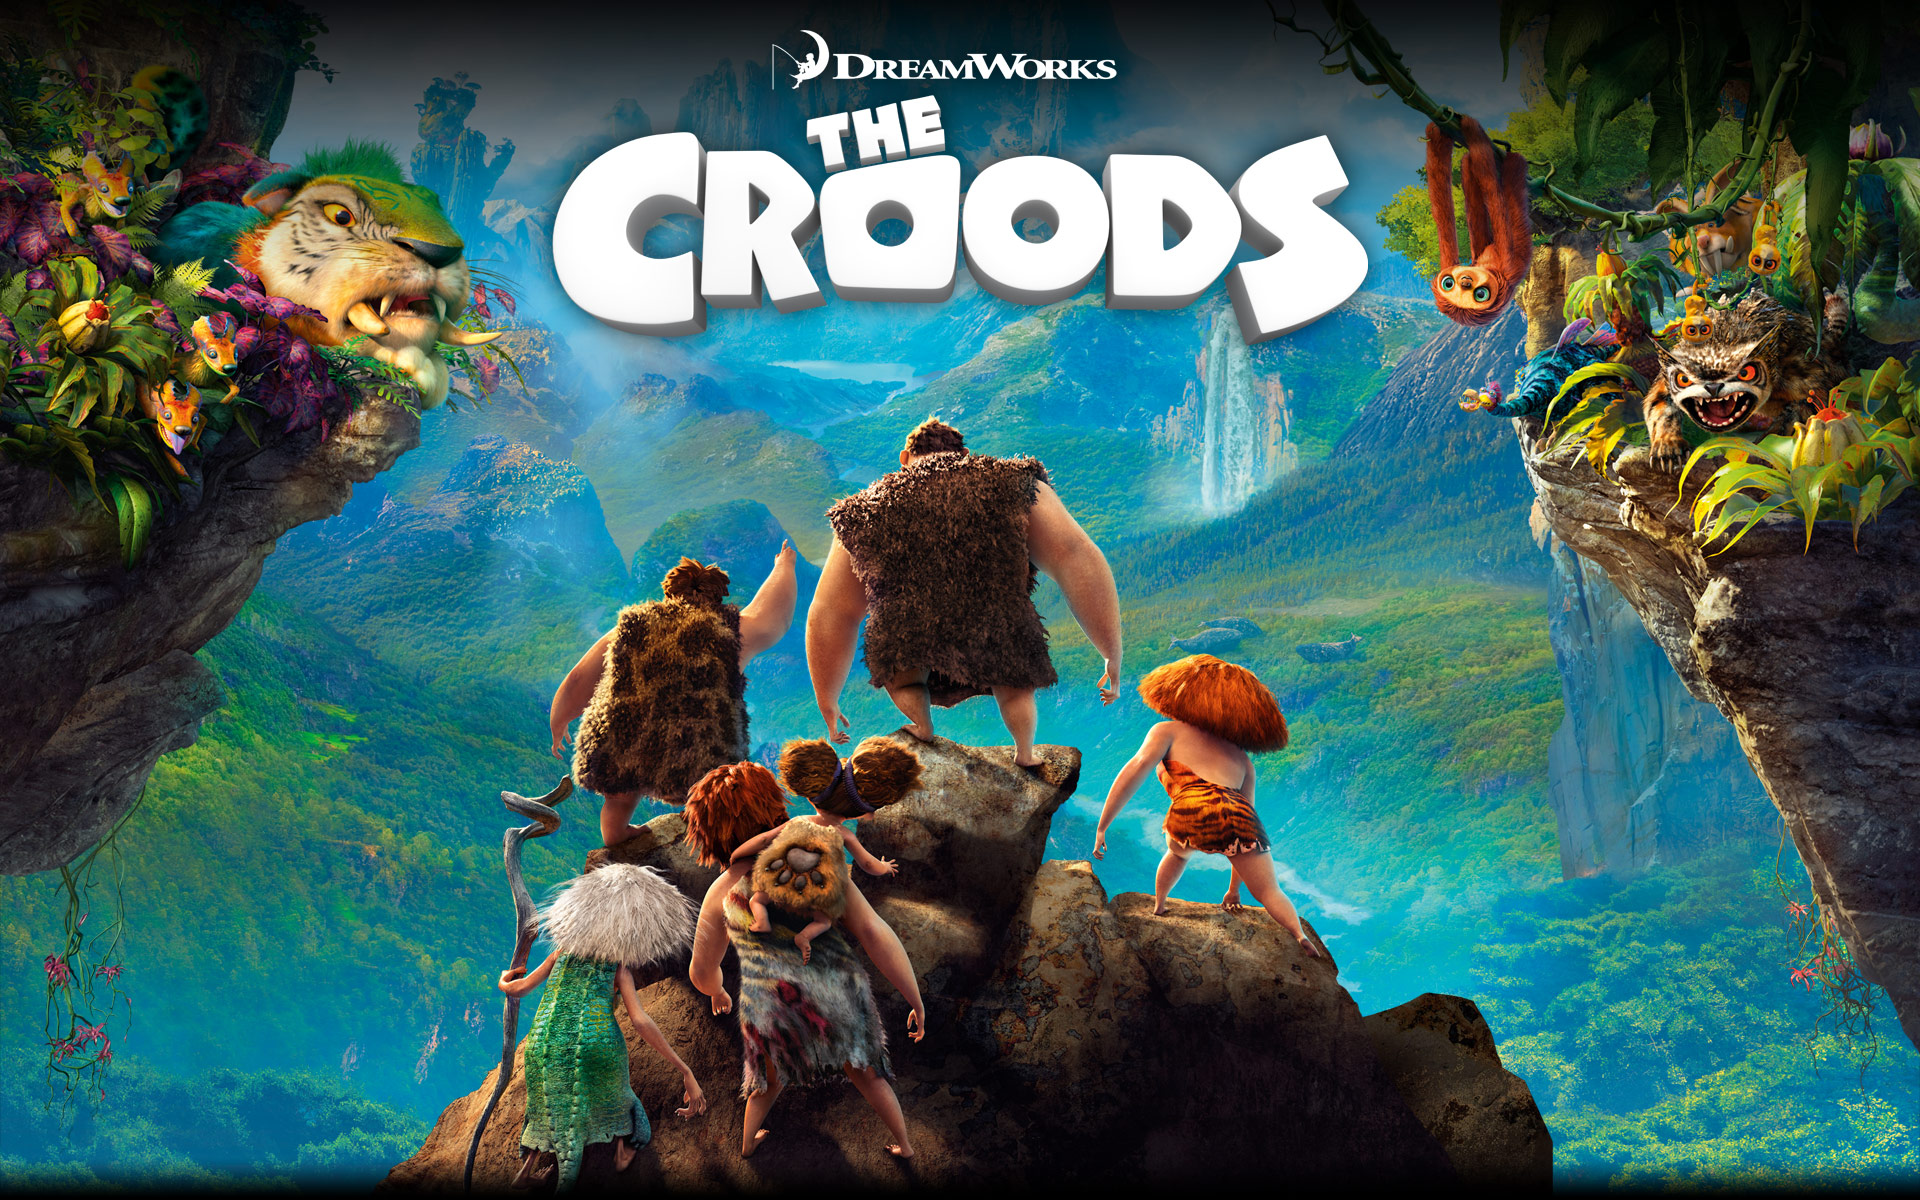 The Croods Poster - The Croods Poster